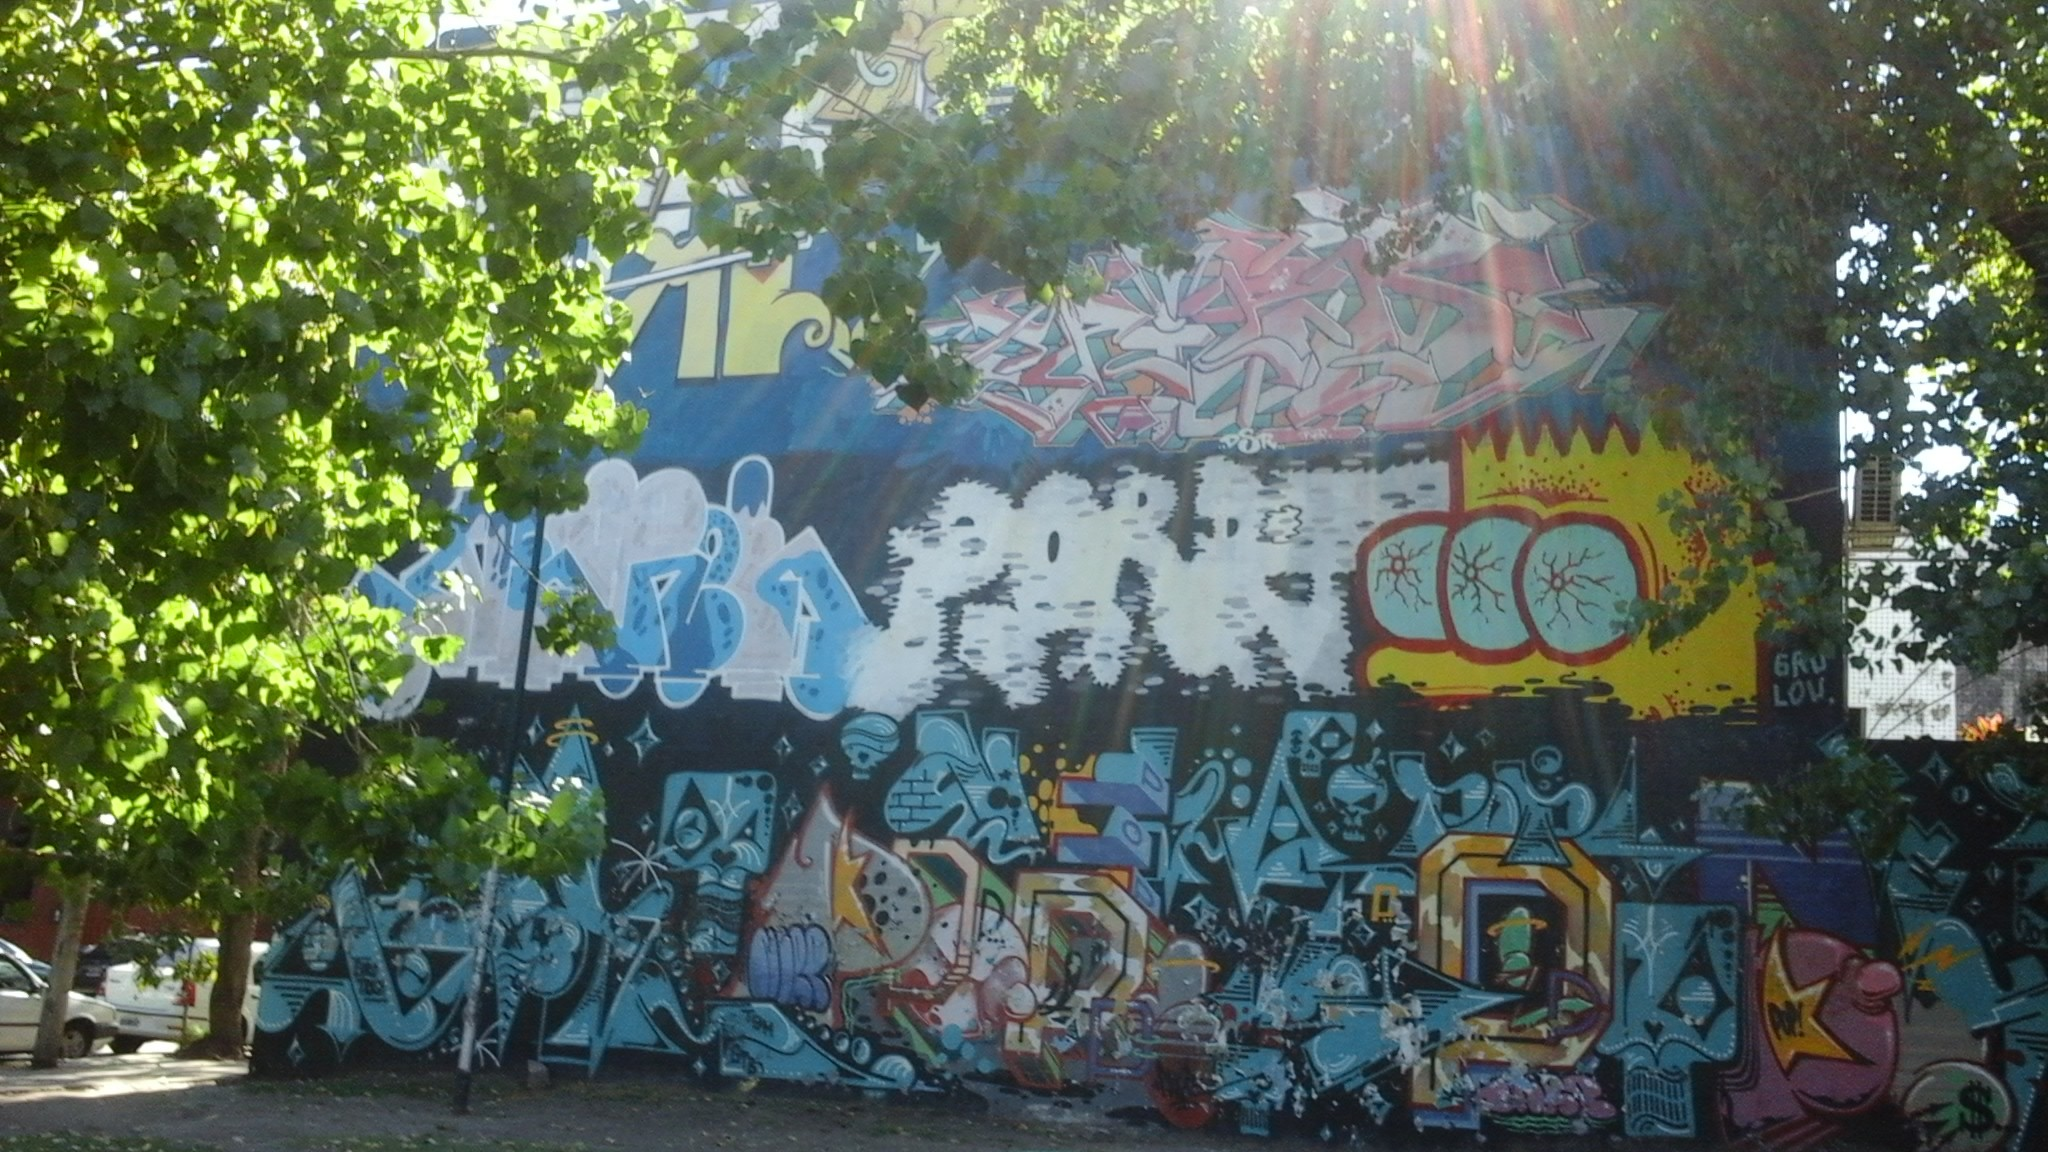 Large wall covered in different graffiti styles